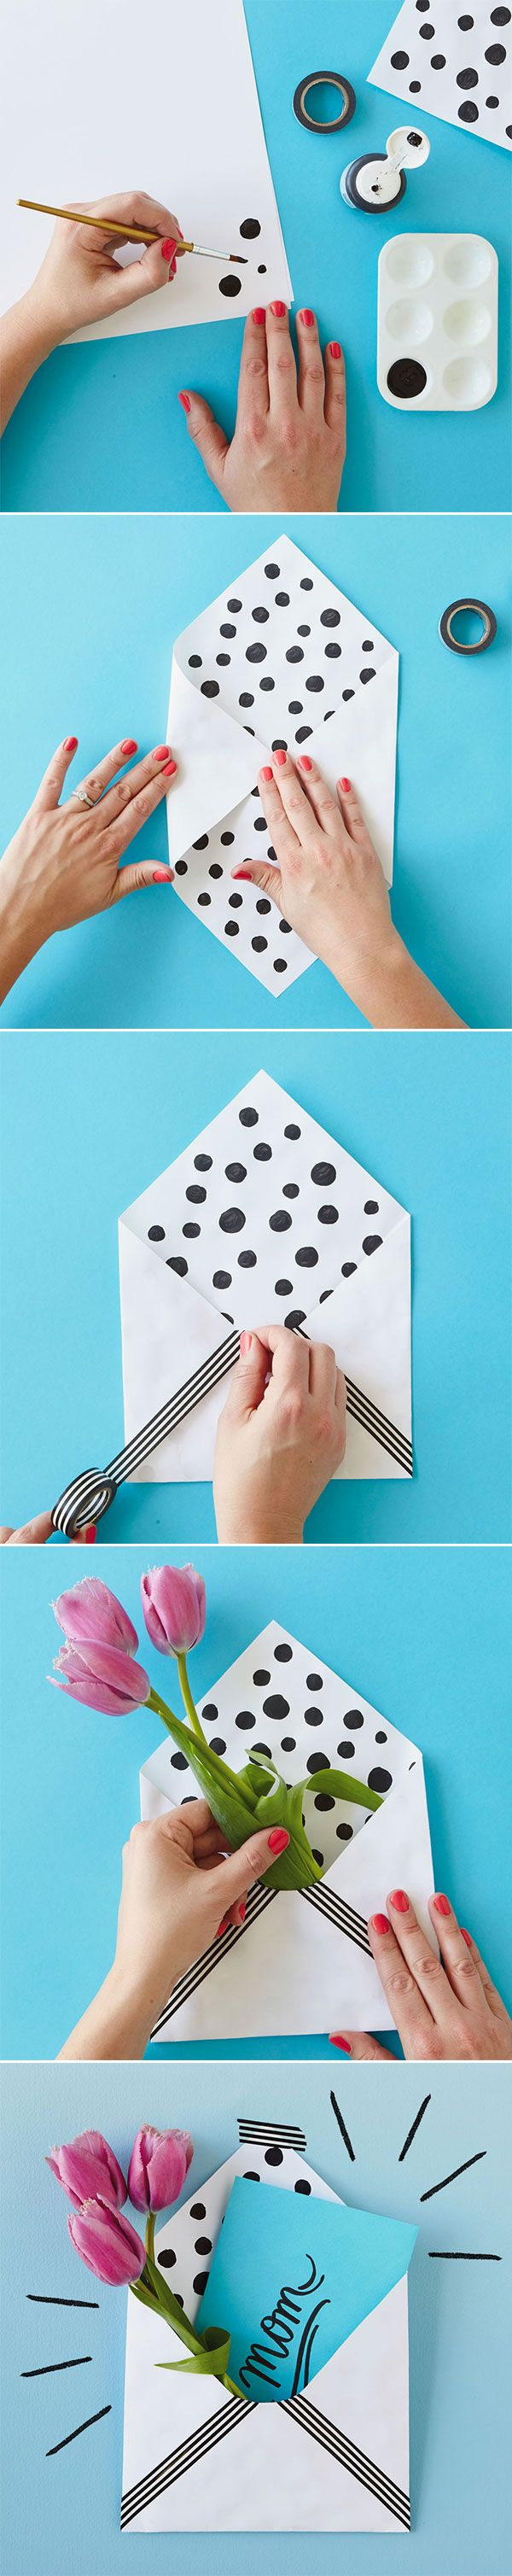 This DIY project is easy enough for kids to do! A little paint, folding, tape and - VOILA! - a nice decorated envelope perfect for a card and flower this Mother's Day. Get more DIY inspiration from Think.Make.Share!